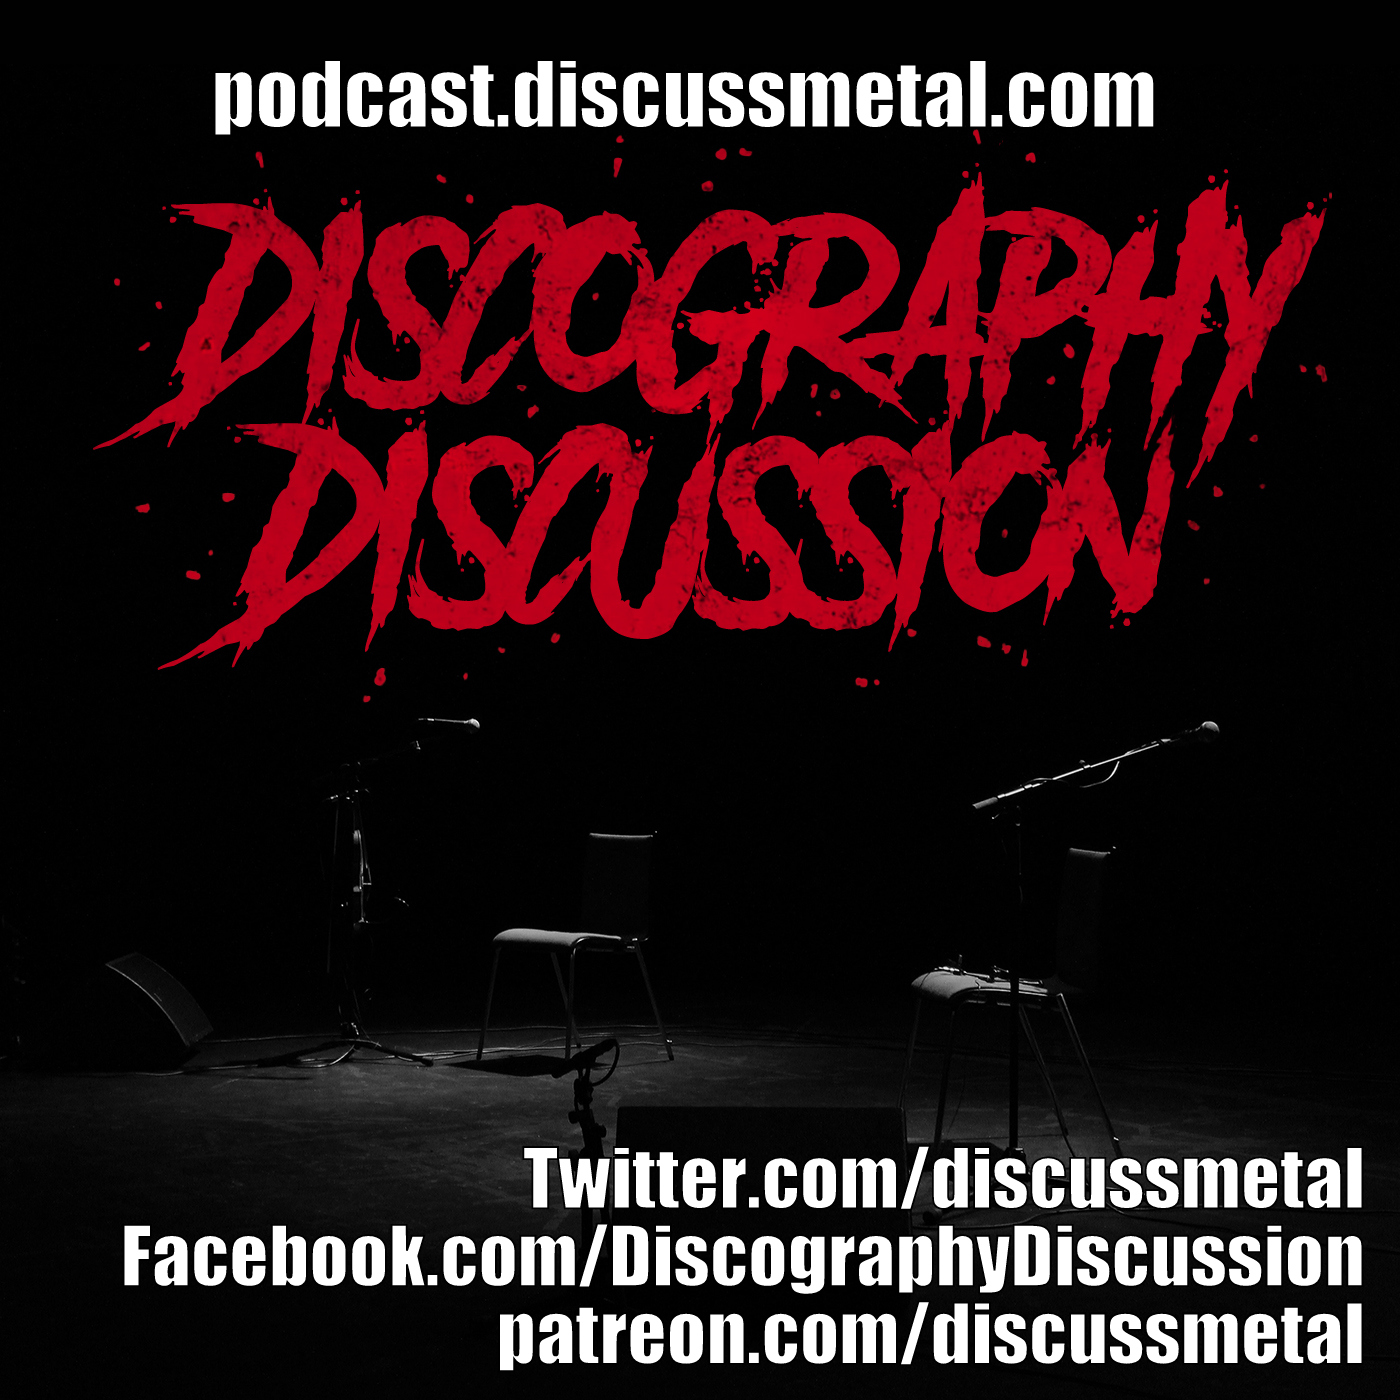 Episode 017: The Contortionist - Discography Discussion